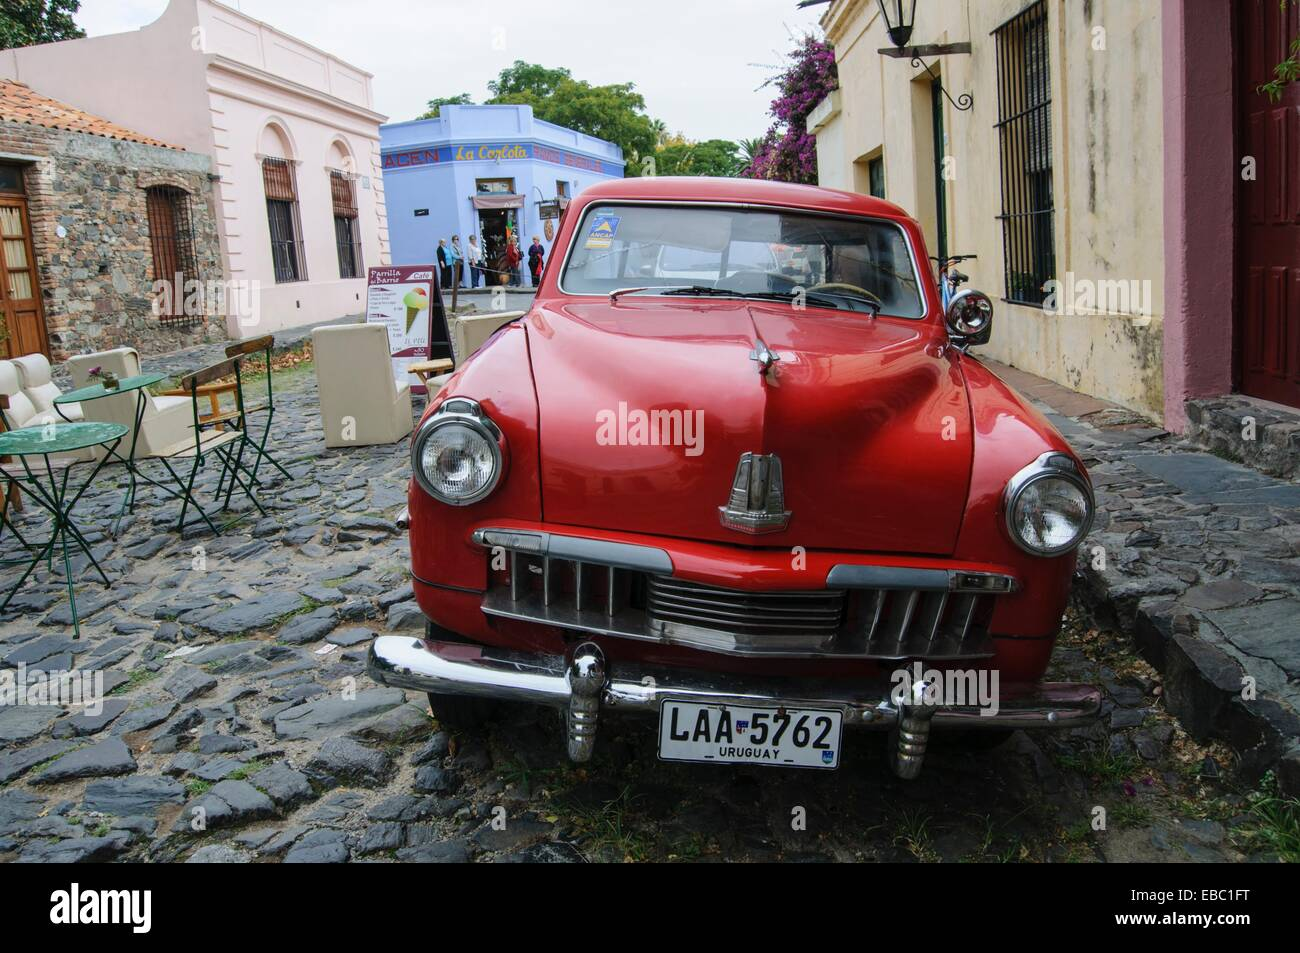 classic car colonia del sacramento uruguay stock photo royalty free image 75867340 alamy. Black Bedroom Furniture Sets. Home Design Ideas